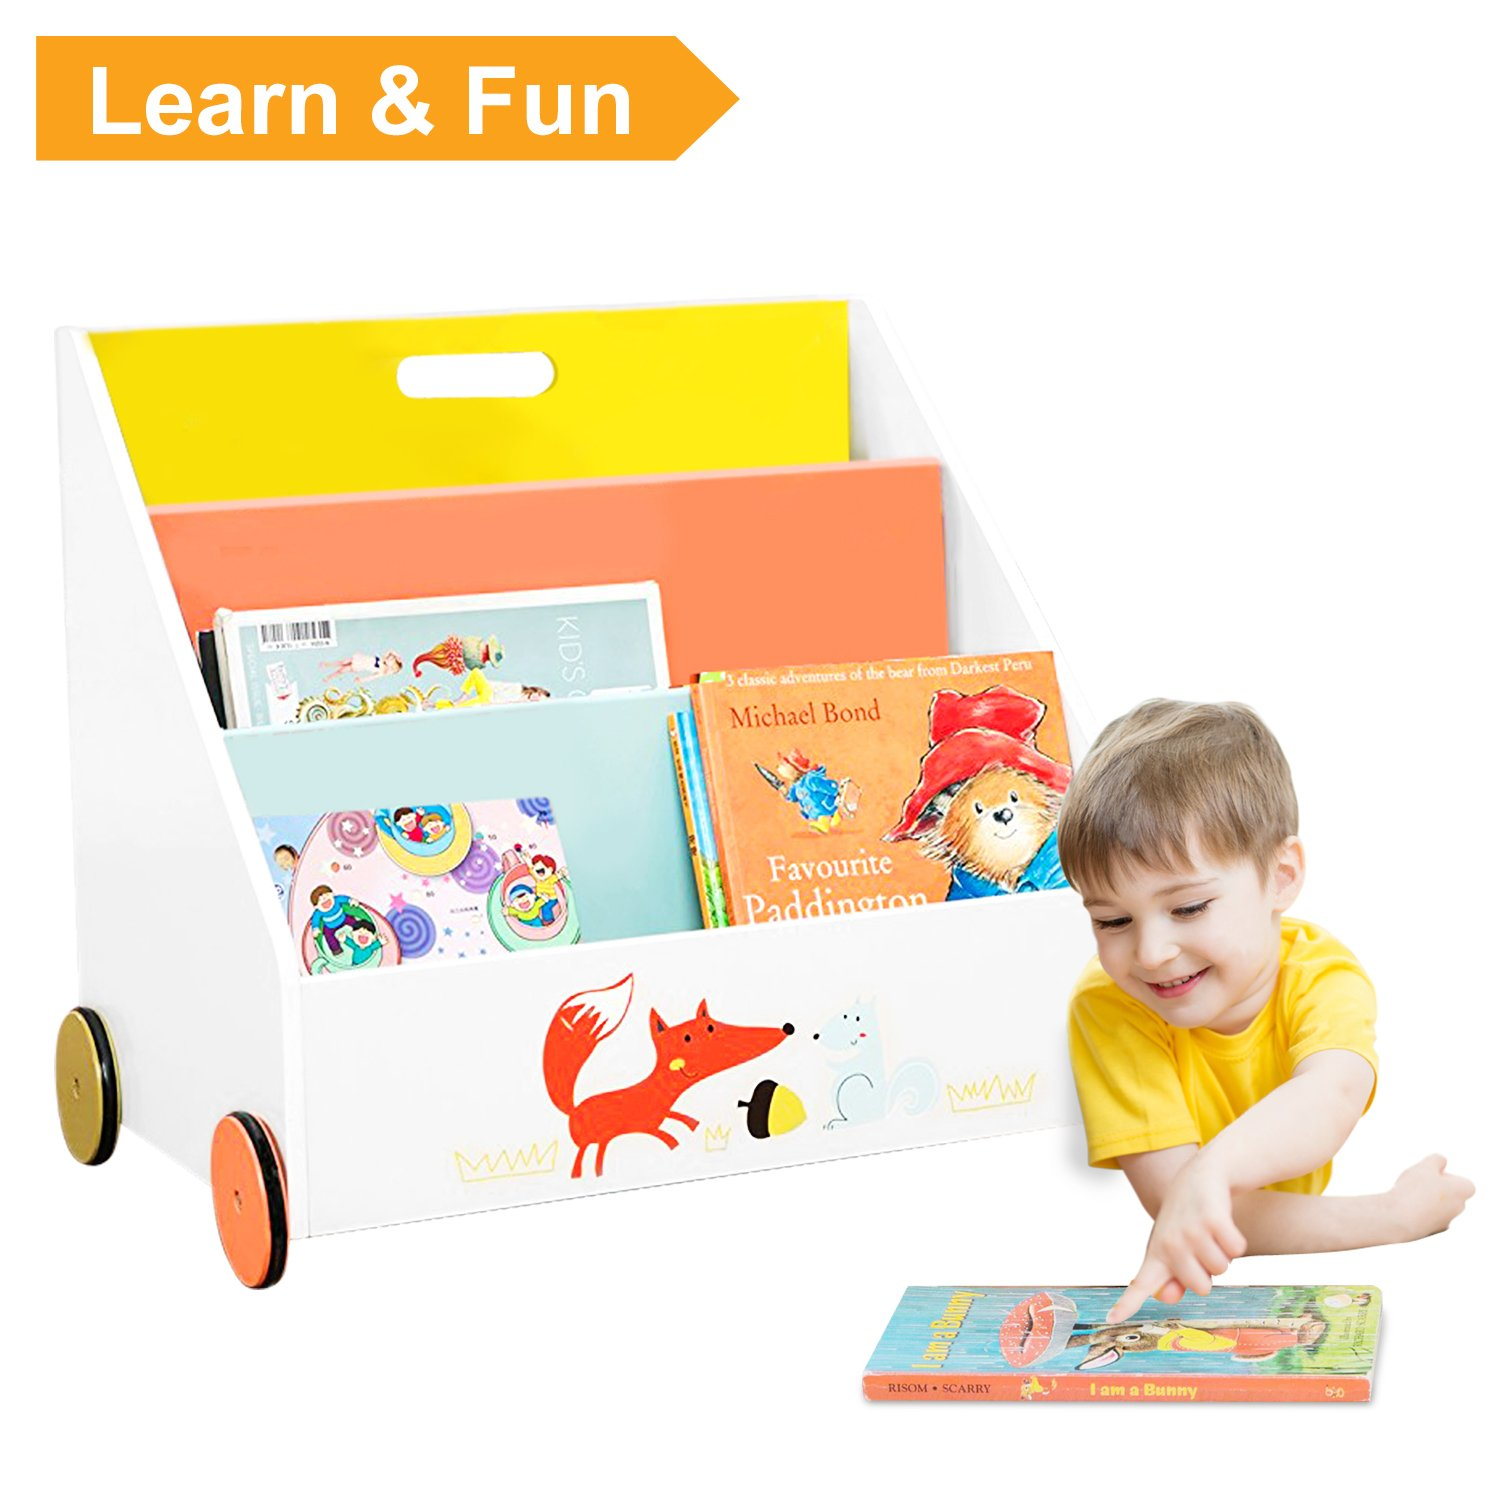 Labebe Child Bookcase, Small Wooden Bookshelf with Wheels, 2-in-1 Fox Printed Orange Bookcase for Kids 1-5 Years, Movable Bookcase/Small Bookcase kid/Child Wooden Bookcase/Wood Bookcase Storage